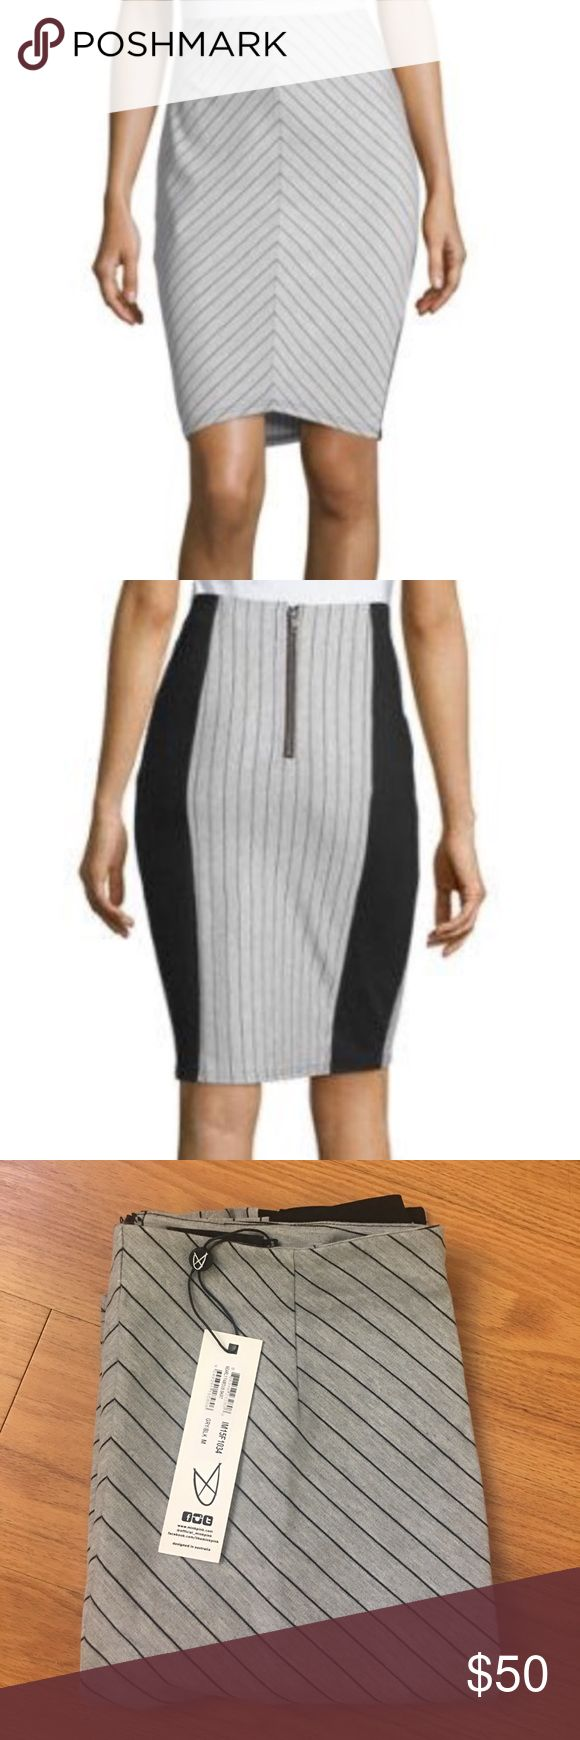 NWT MINKPINK Grey/Black Striped Pencil Skirt NWT.  Super cute day to night MINKPINK pencil skirt.  Size M.    Waist is 15 in flat across.  22.5 long down side, 20 in straight down the middle.  Fits a size 8-12.  Send me an offer! MINKPINK Skirts Pencil